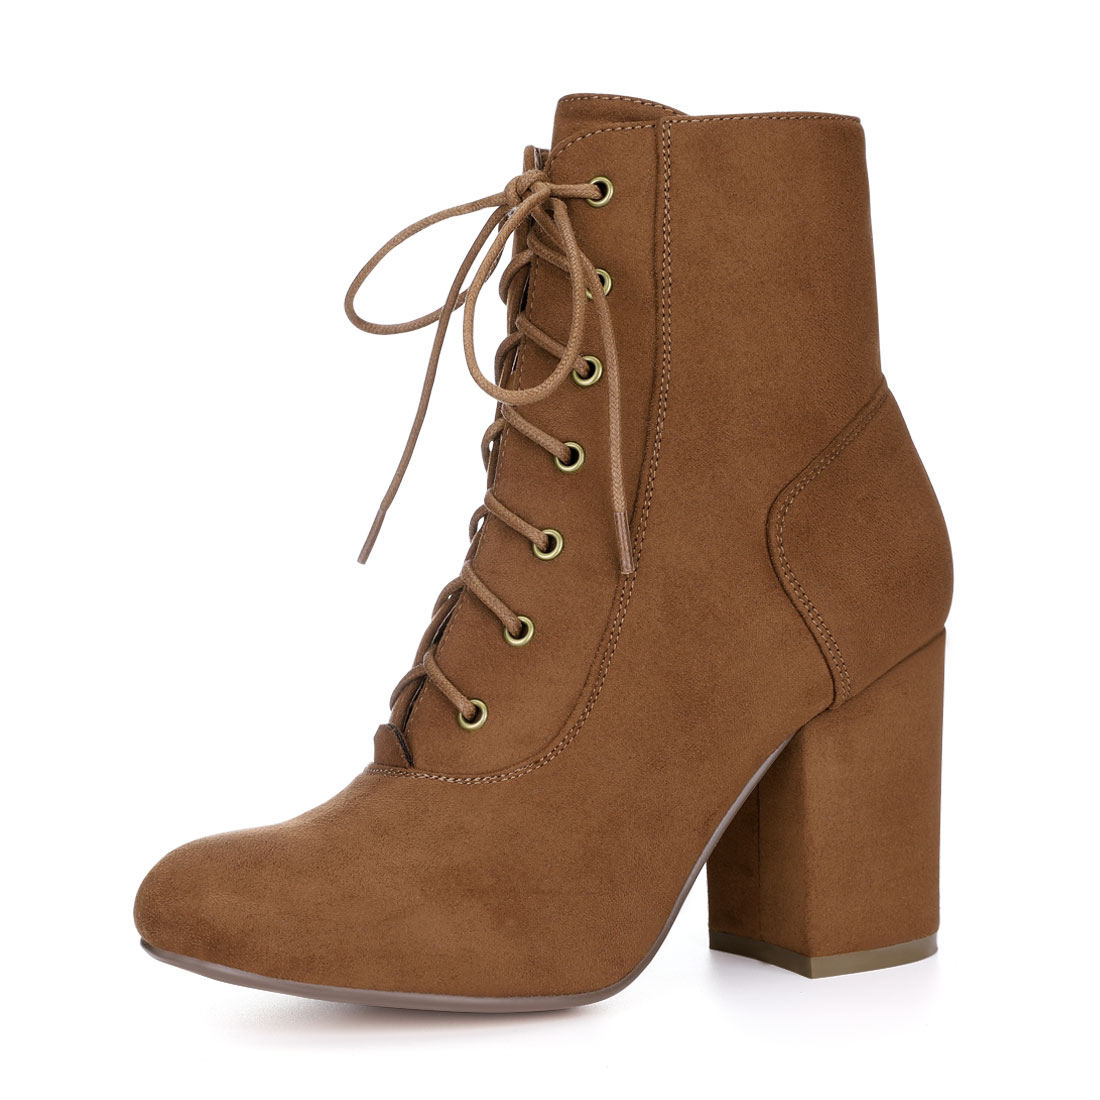 Allegra K Women Round Toe Chunky High Heel Lace Up Booties Brown US 10